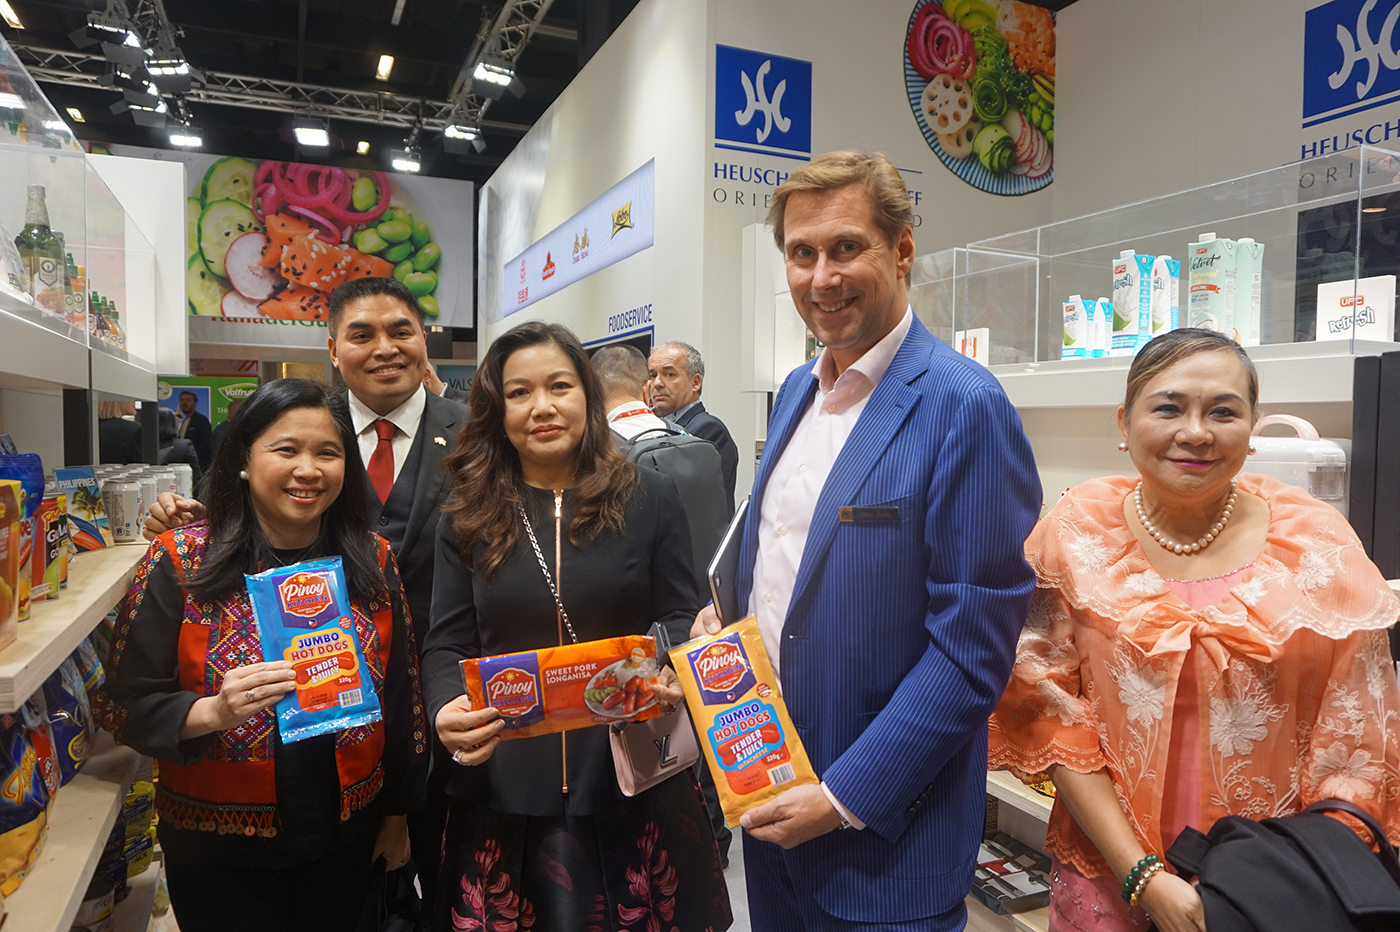 PITCH FOR PH PRODUCTS. Philippine officials and President Rodrigo Duterte's partner Honeylet Avanceu00f1a with Marc Boits of importer Heuschen u0026 Schrouff,  at the Heuschen u0026 Schrouff booth, one of the biggest importers of Asian food to Europe. Photo by Carol Ramoran/Rappler